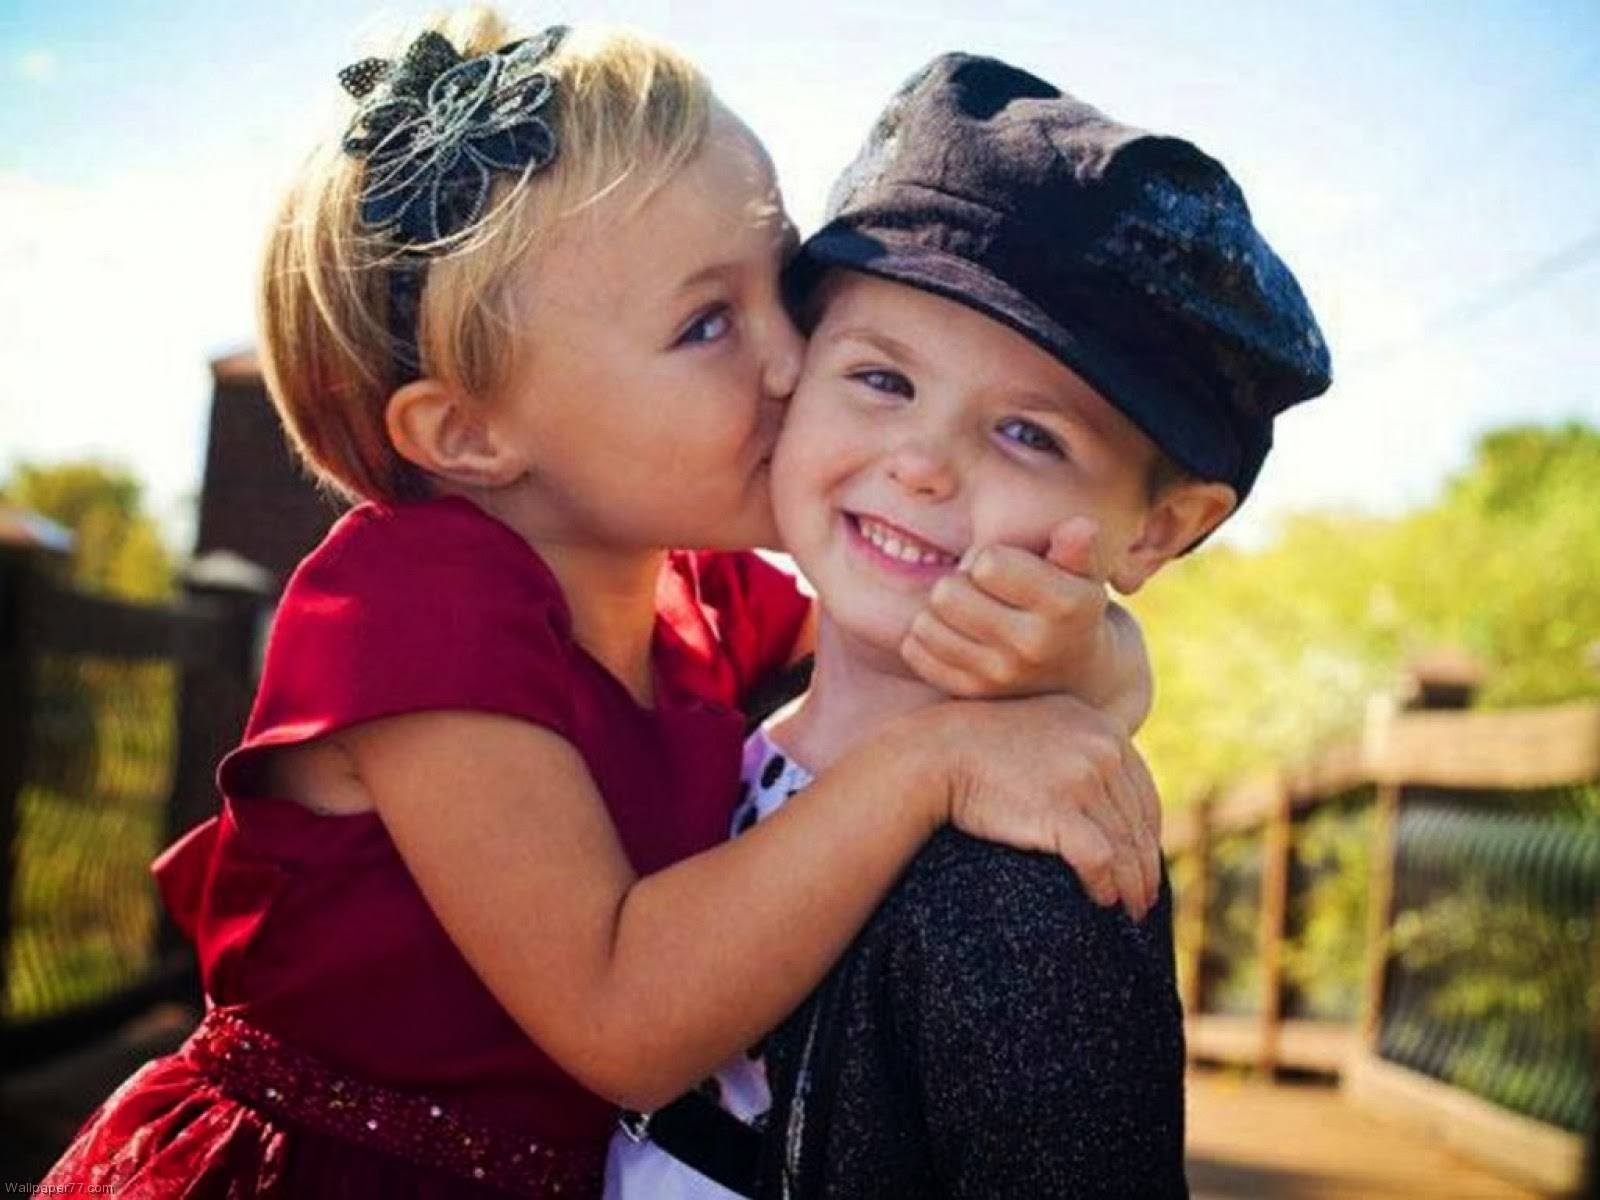 Babies-Kissing-Happy-Kiss-Day